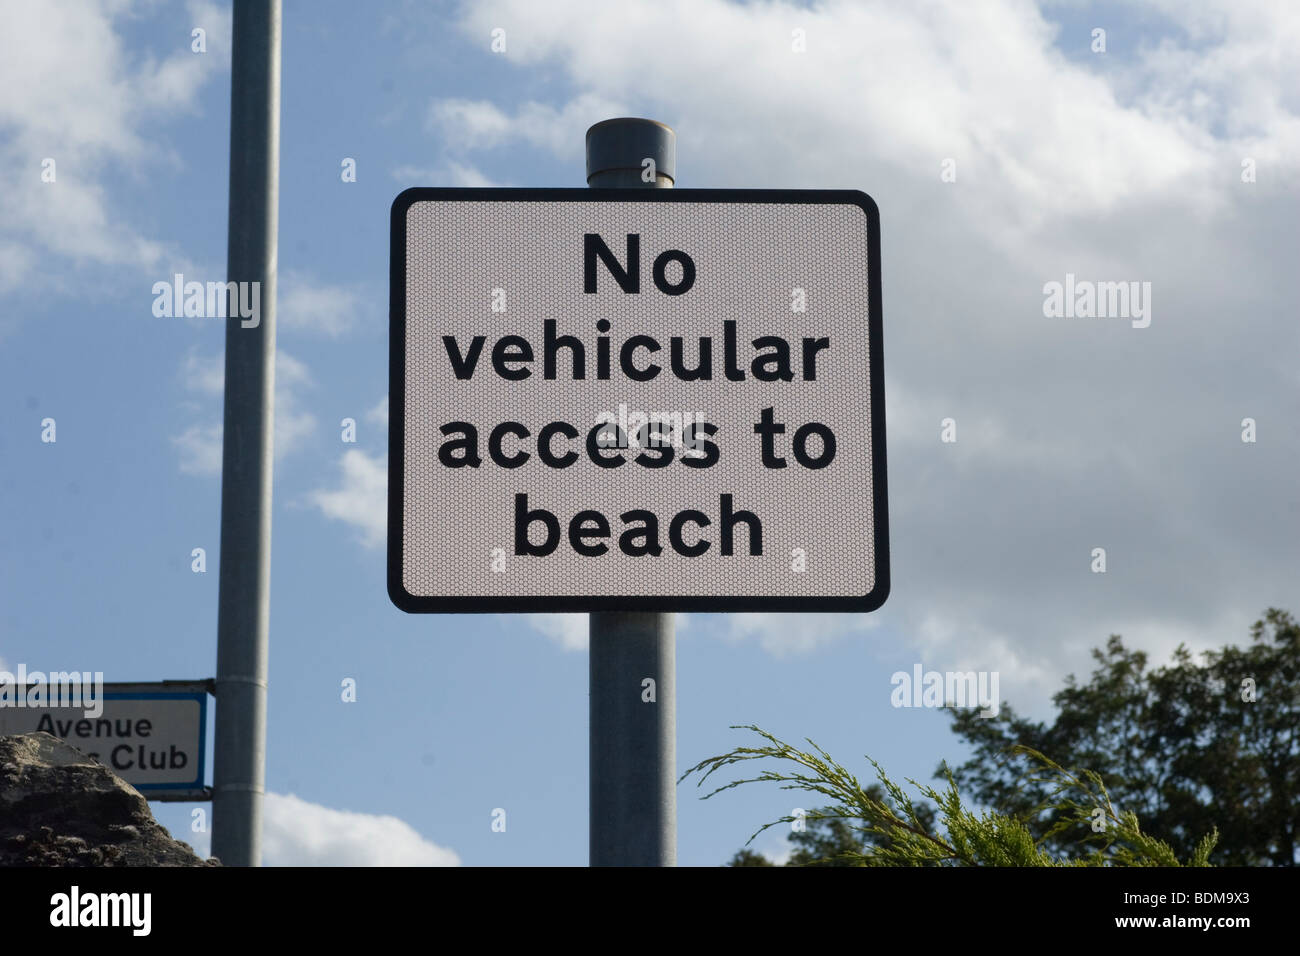 No Vehicular access to the beach sign - Stock Image